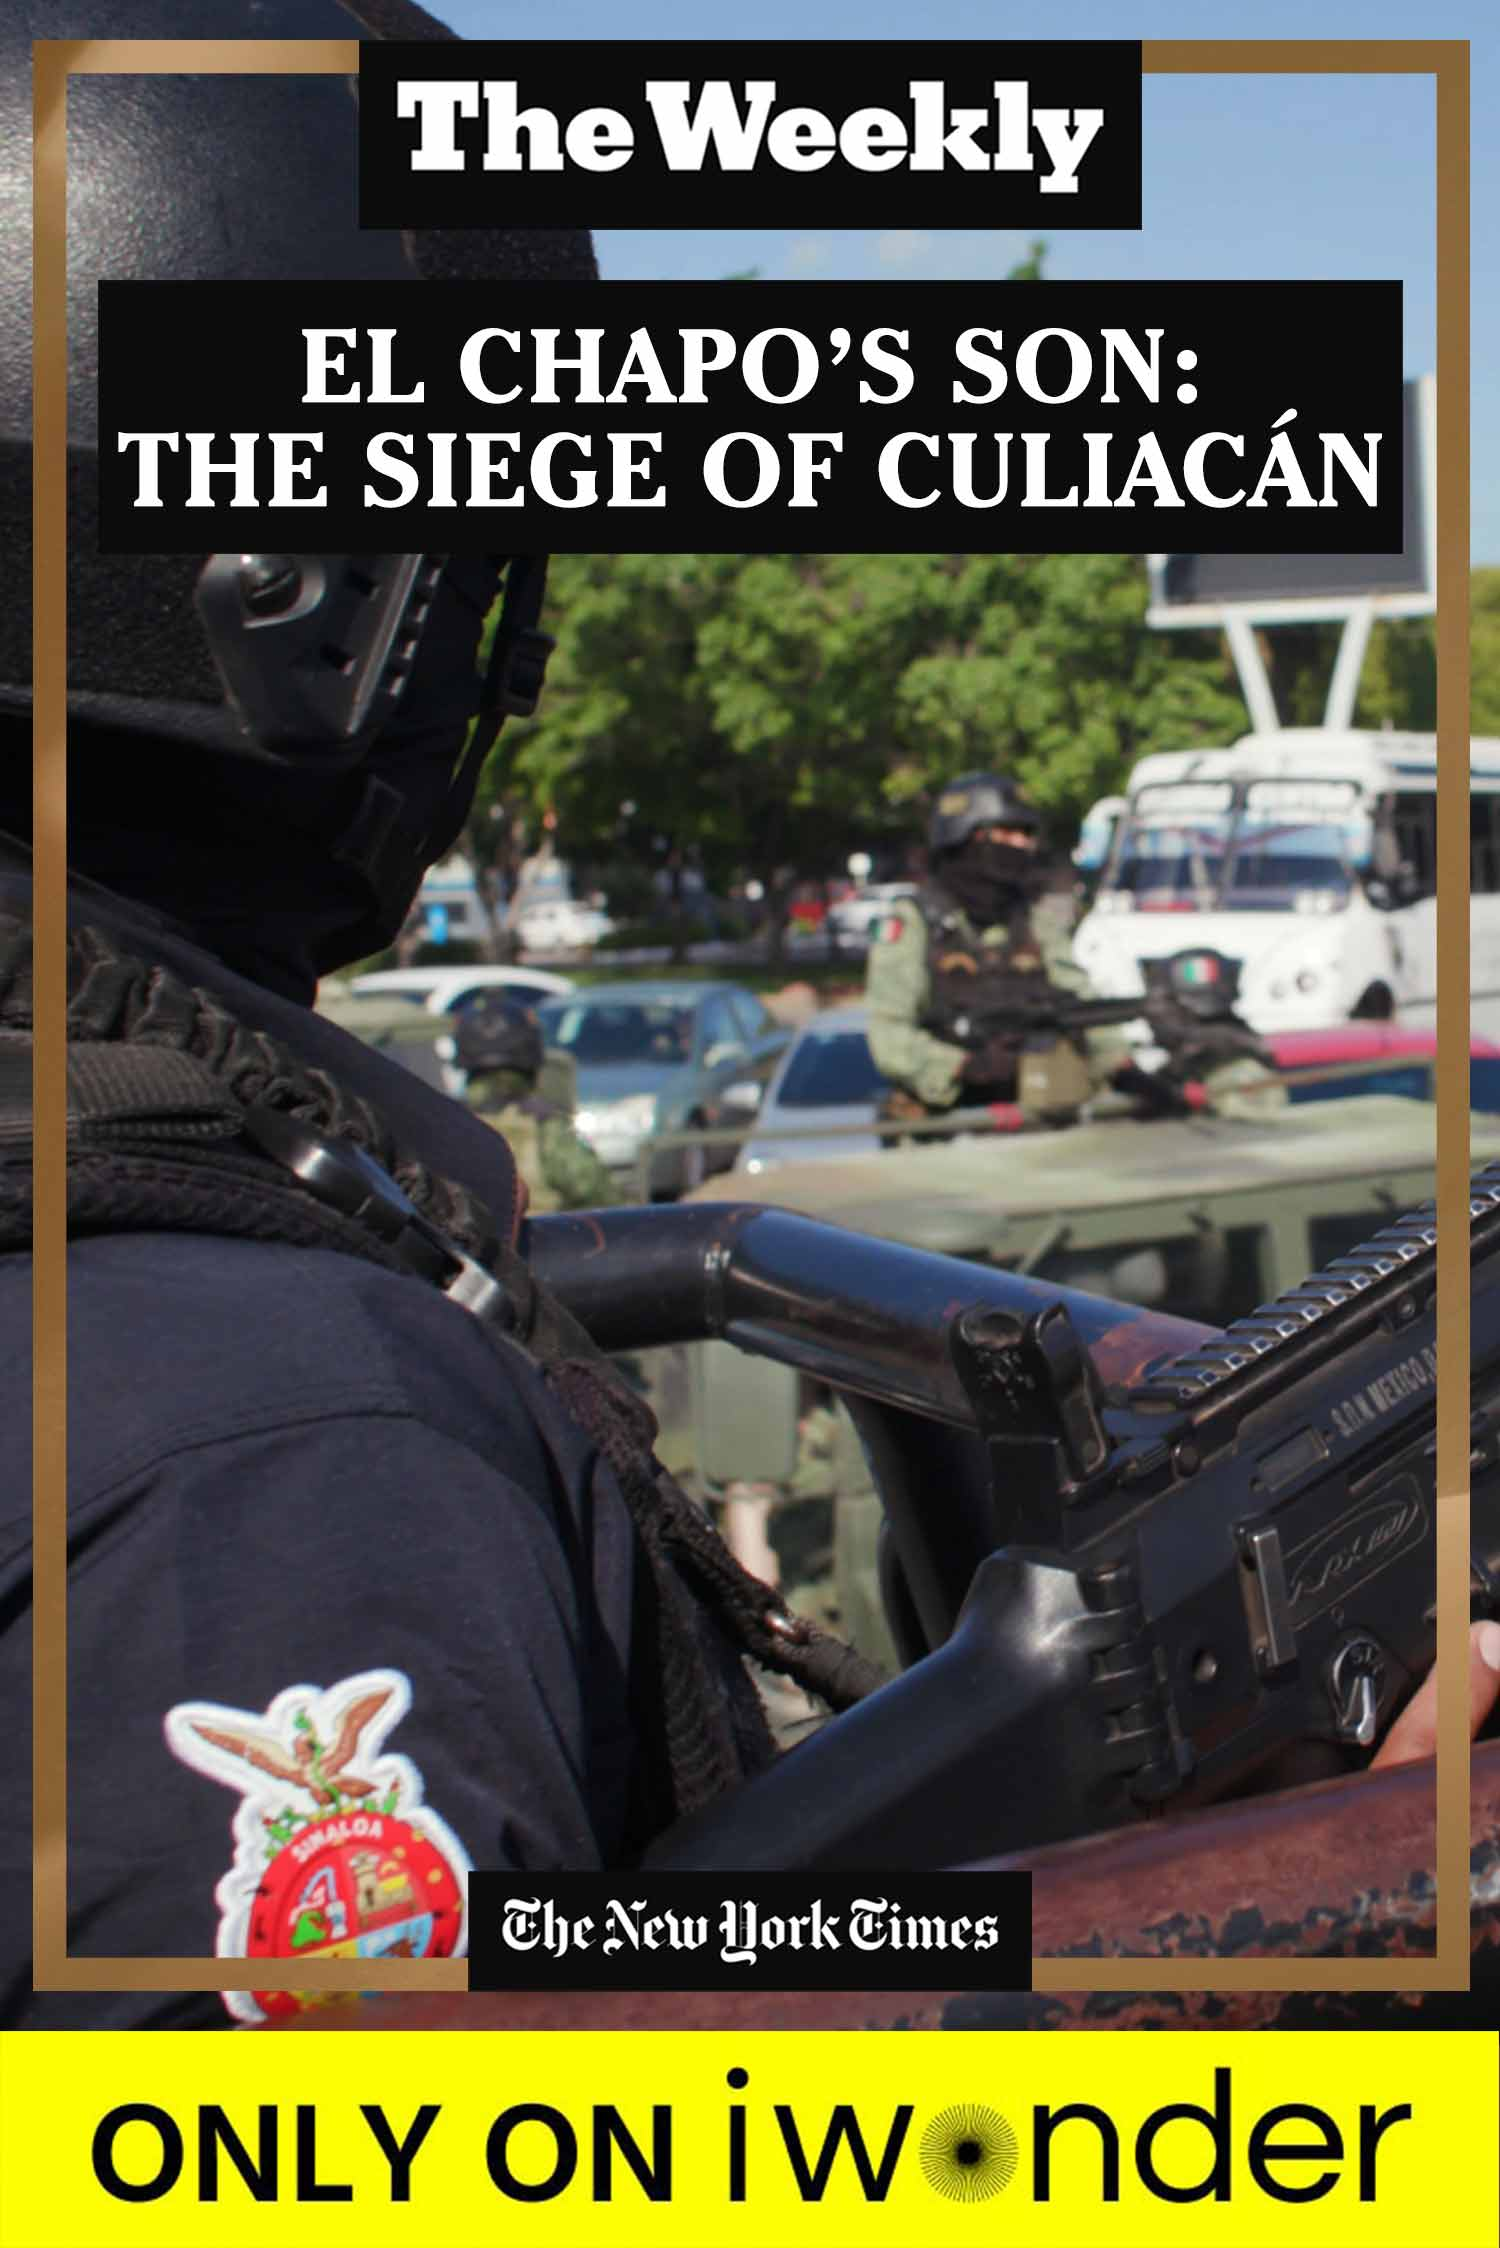 The Weekly: El Chapo's Son - The Siege Of Culiacán